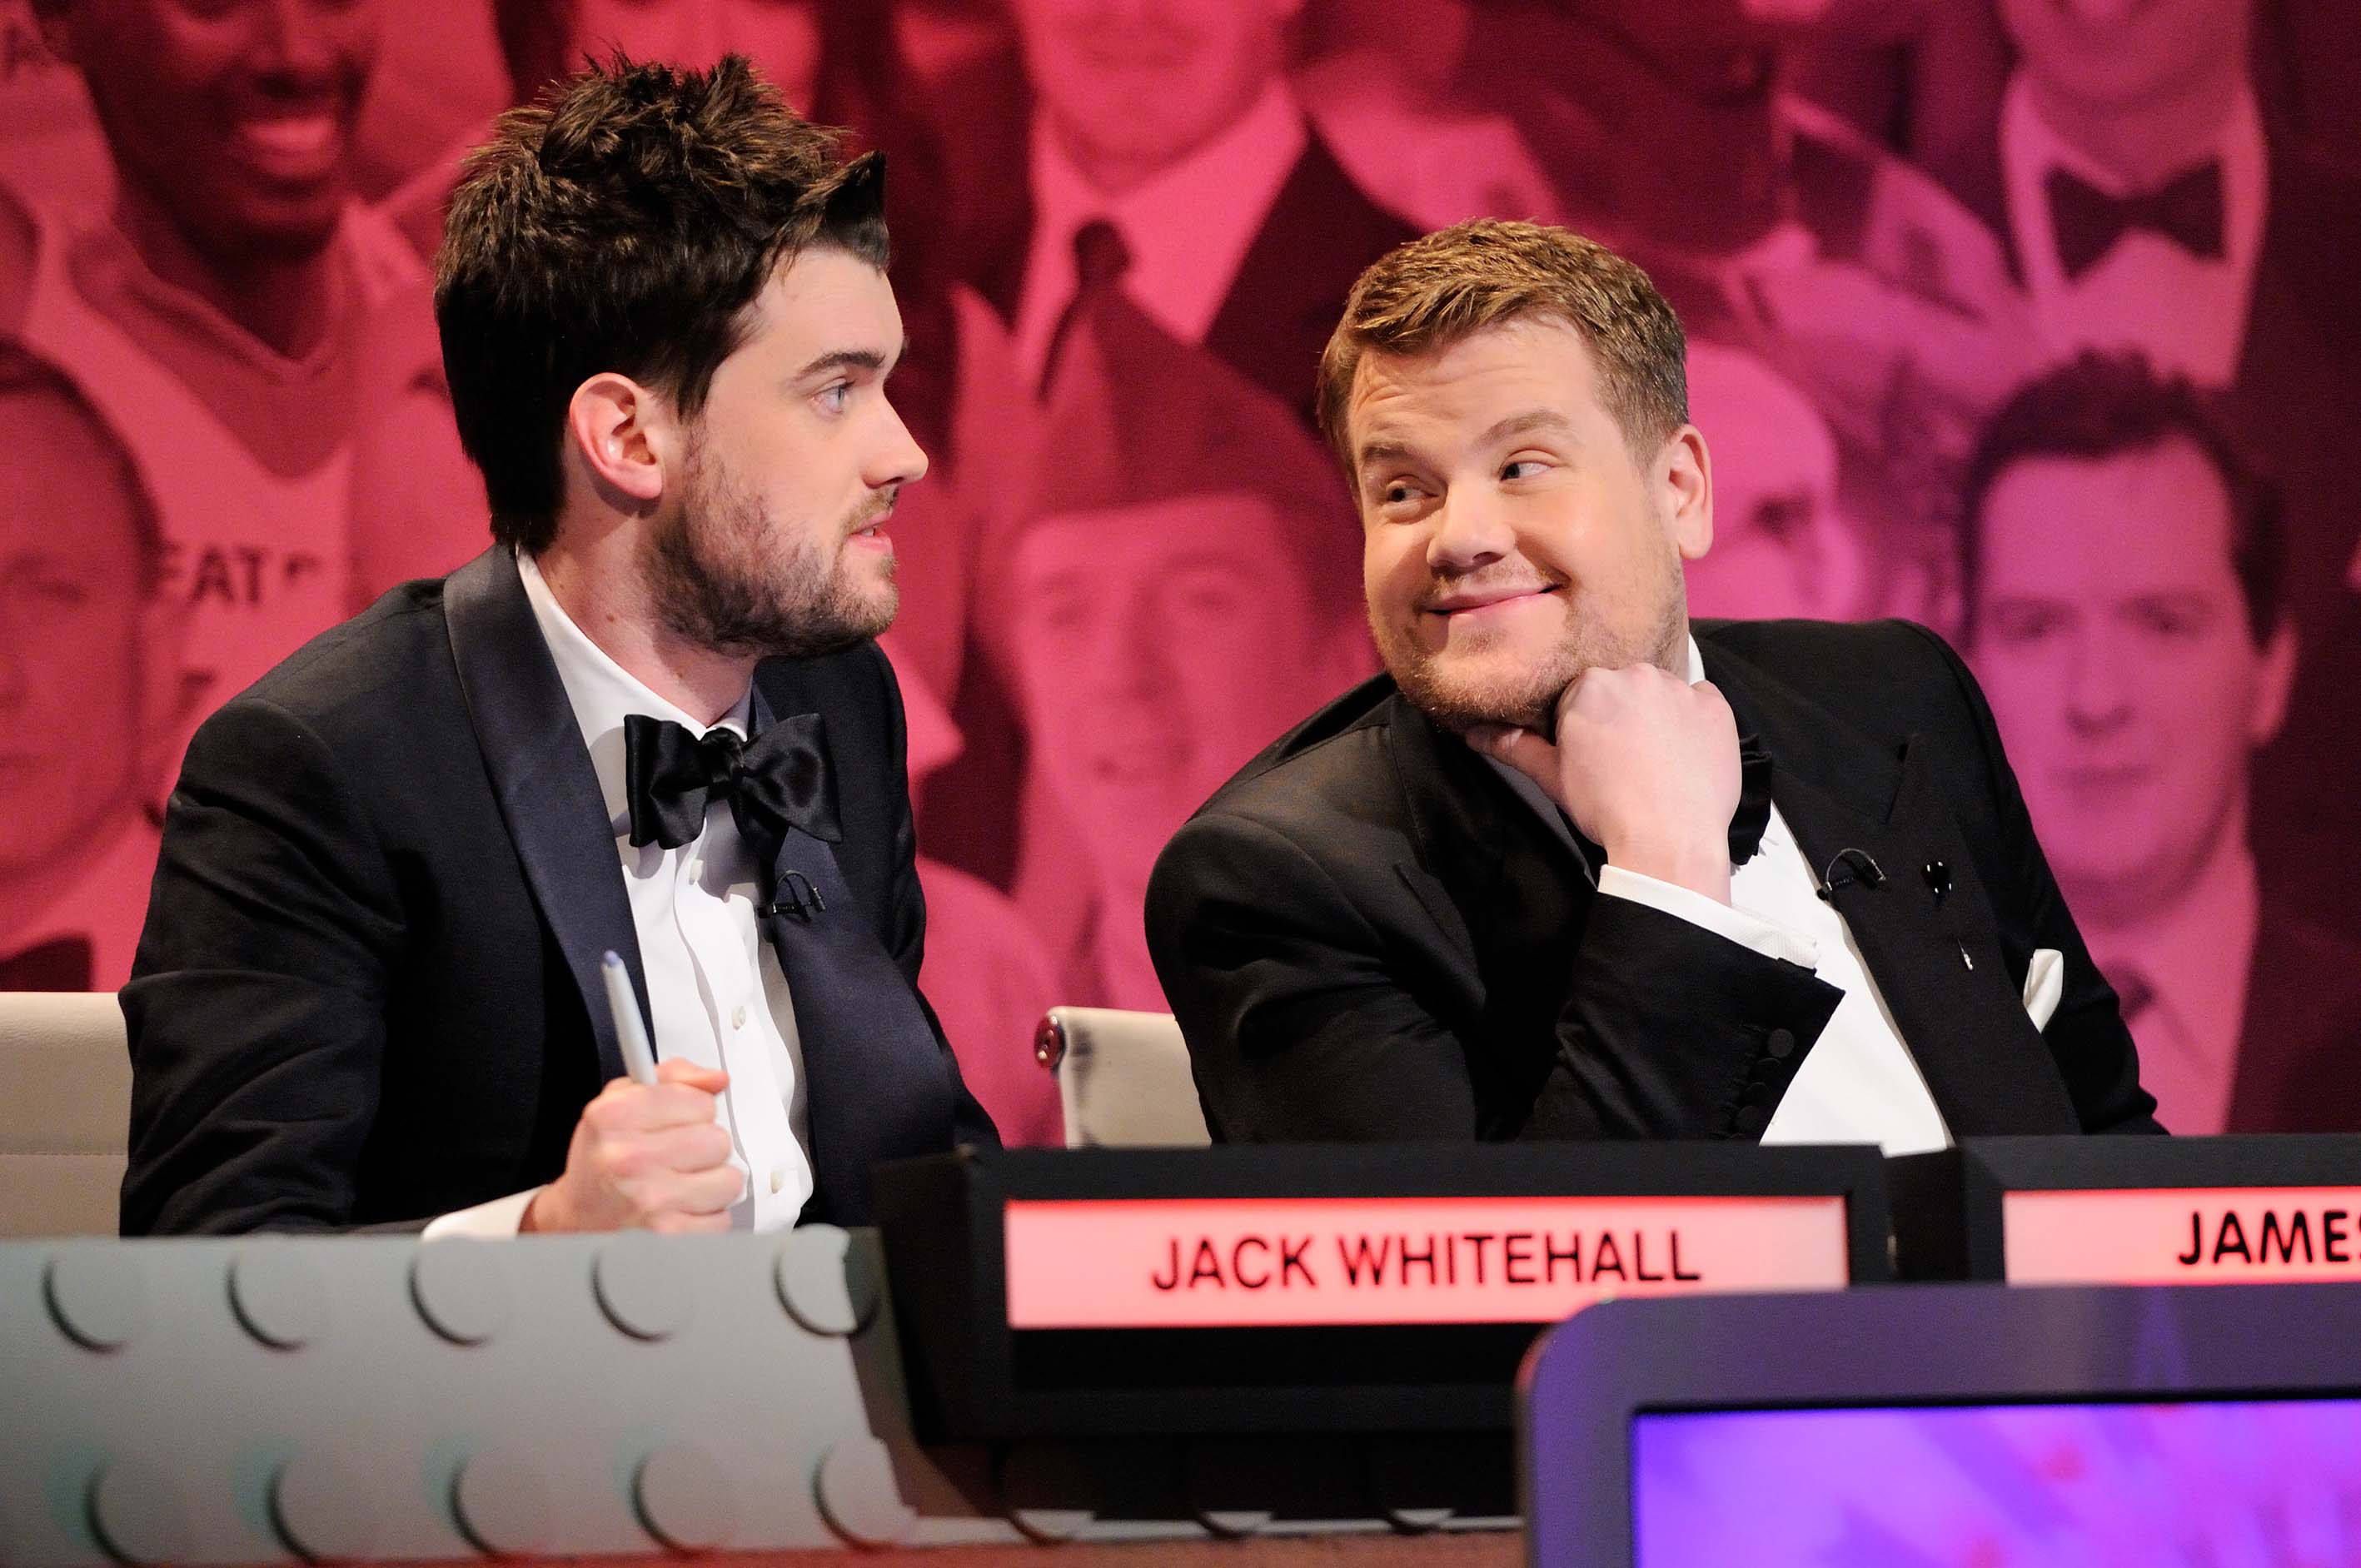 Jack Whitehall and James Corden attracted controversy on Big Fat Quiz Of The Year (Picture: Channel 4)